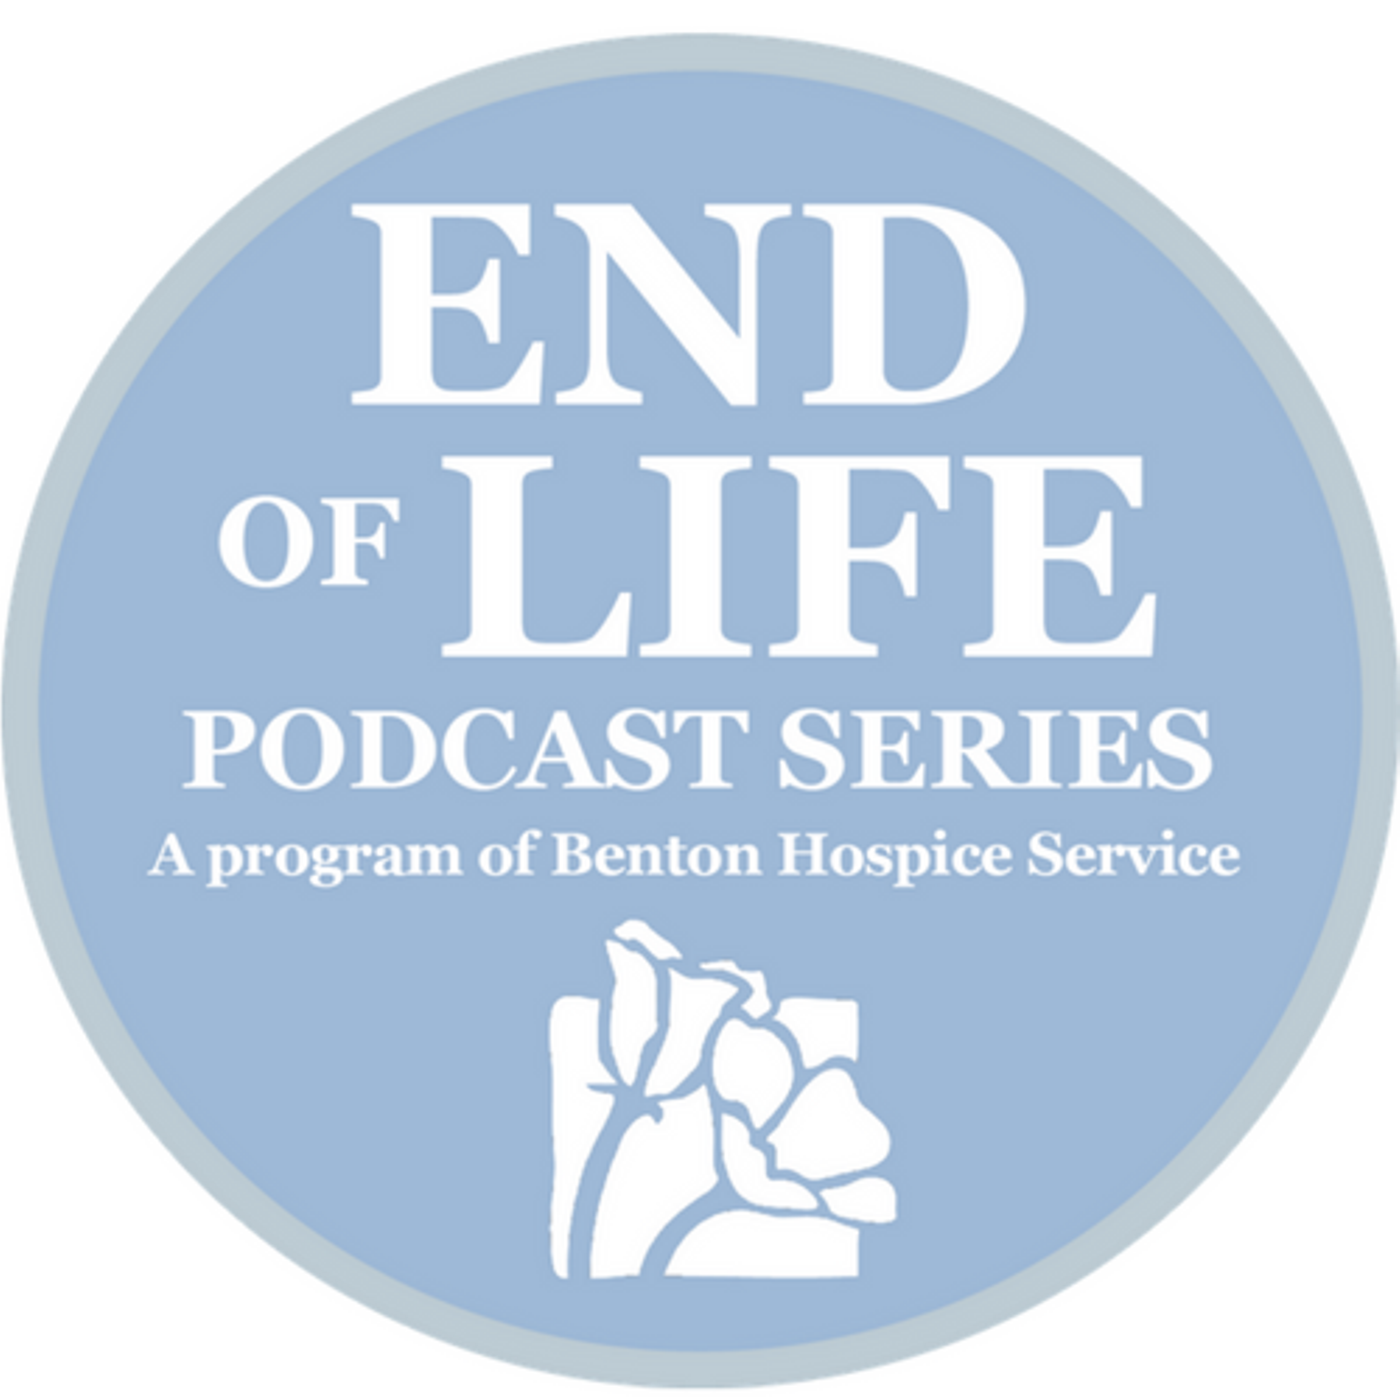 End of Life Podcast from Benton Hospice Service